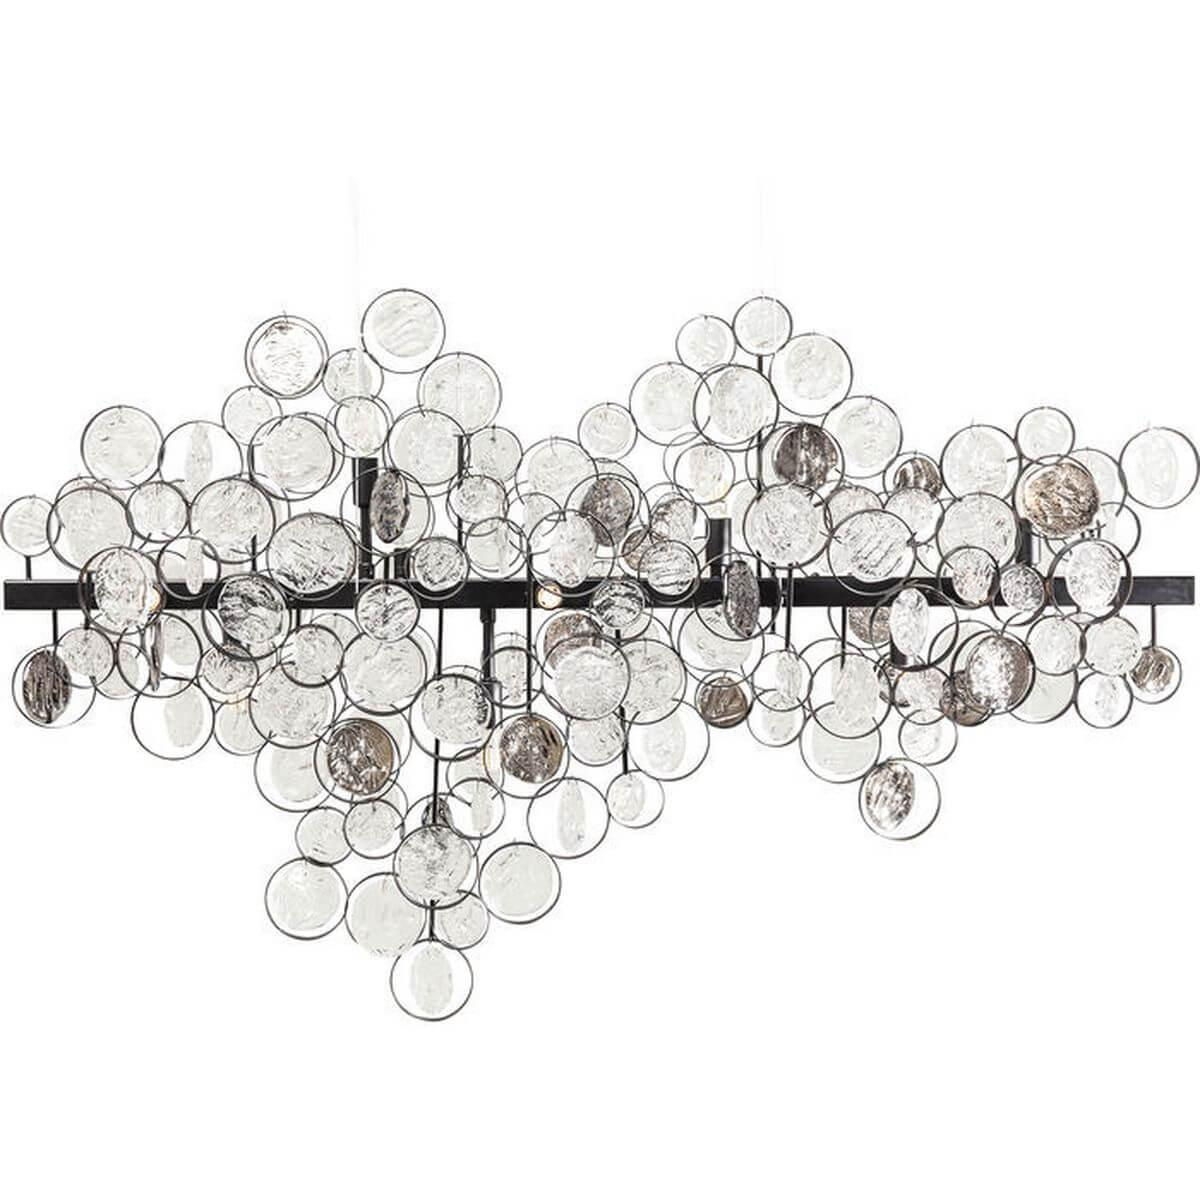 Suspension Clouds Kare Design clair